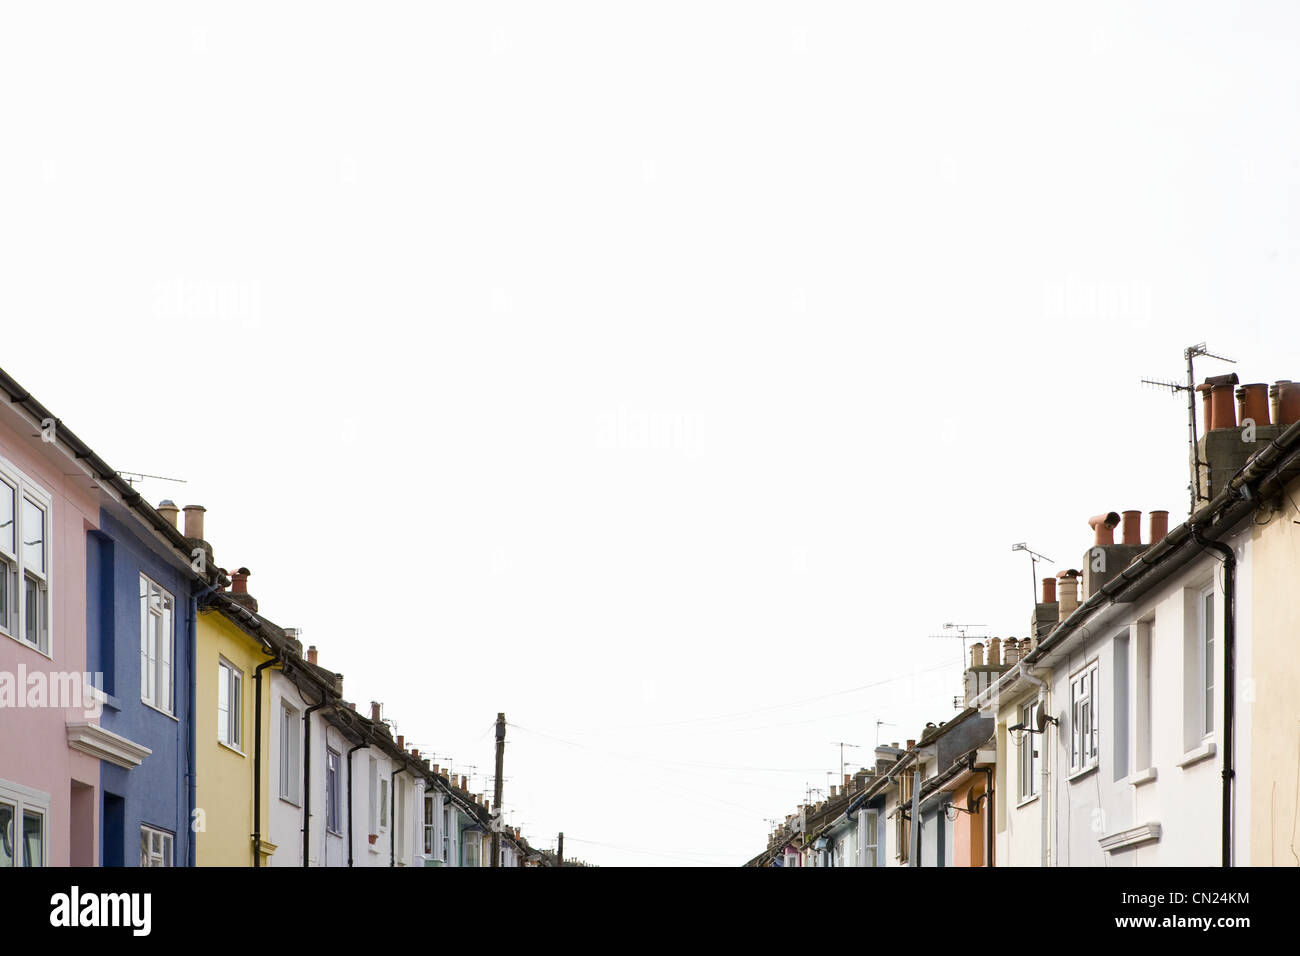 Row of colorful houses - Stock Image